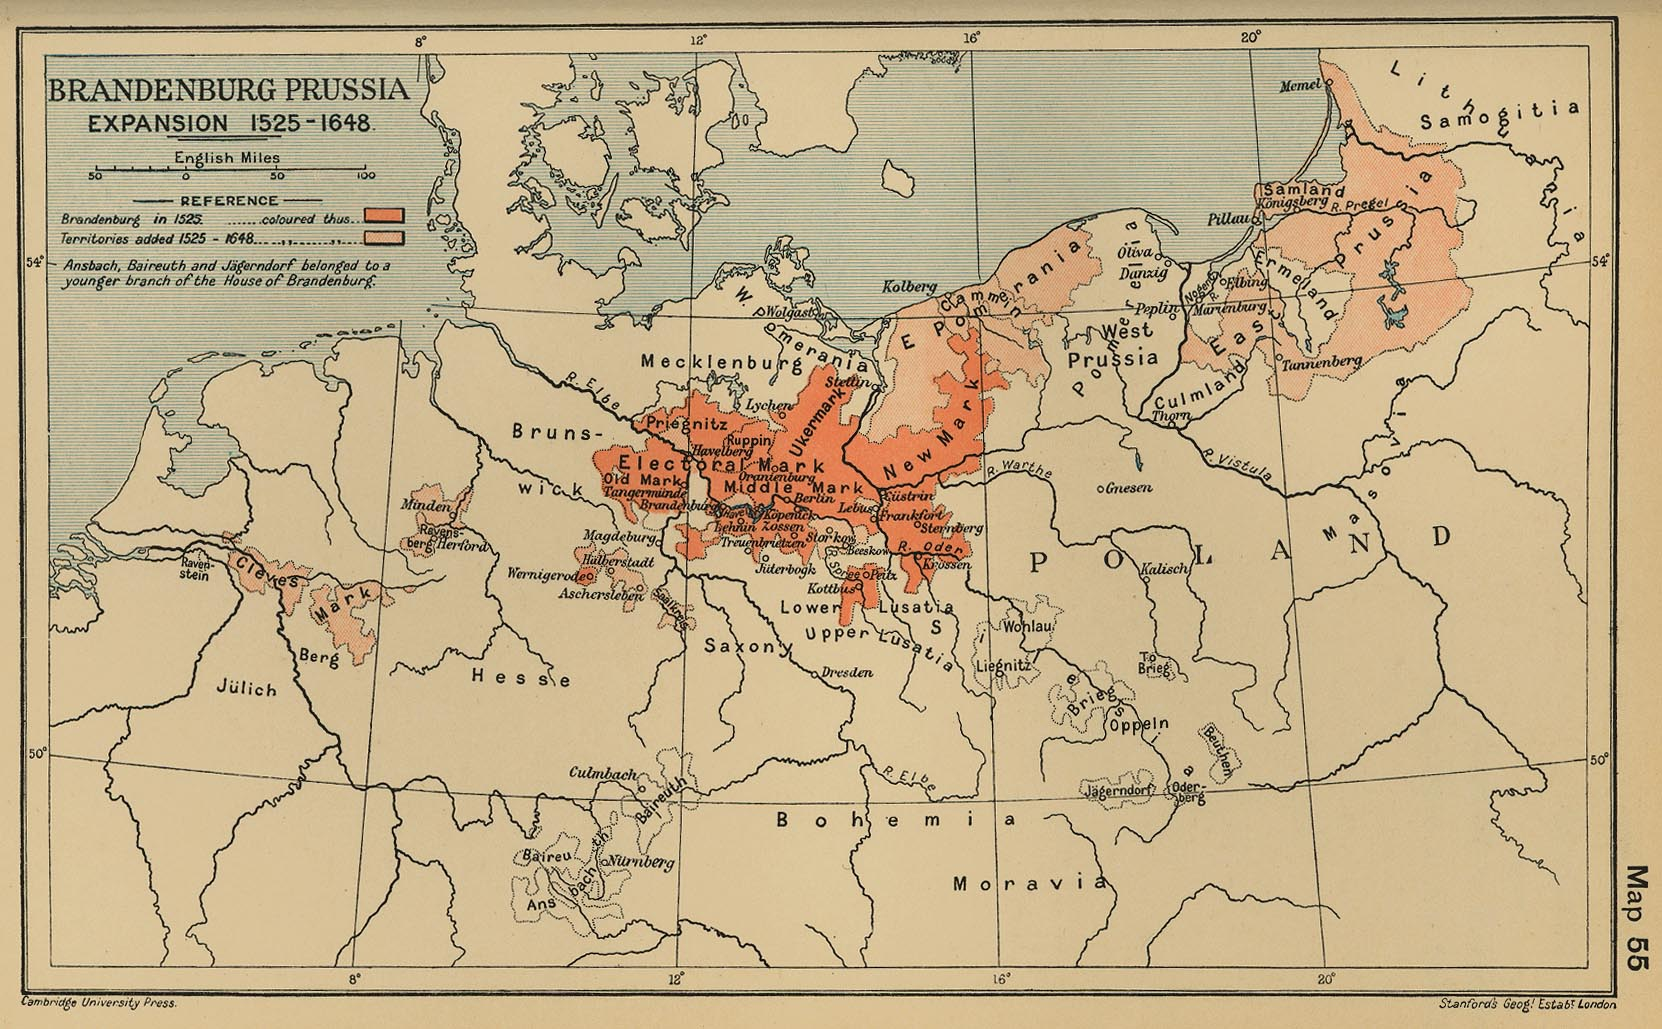 map of brandenburg prussia expansion . map of brandenburg prussia